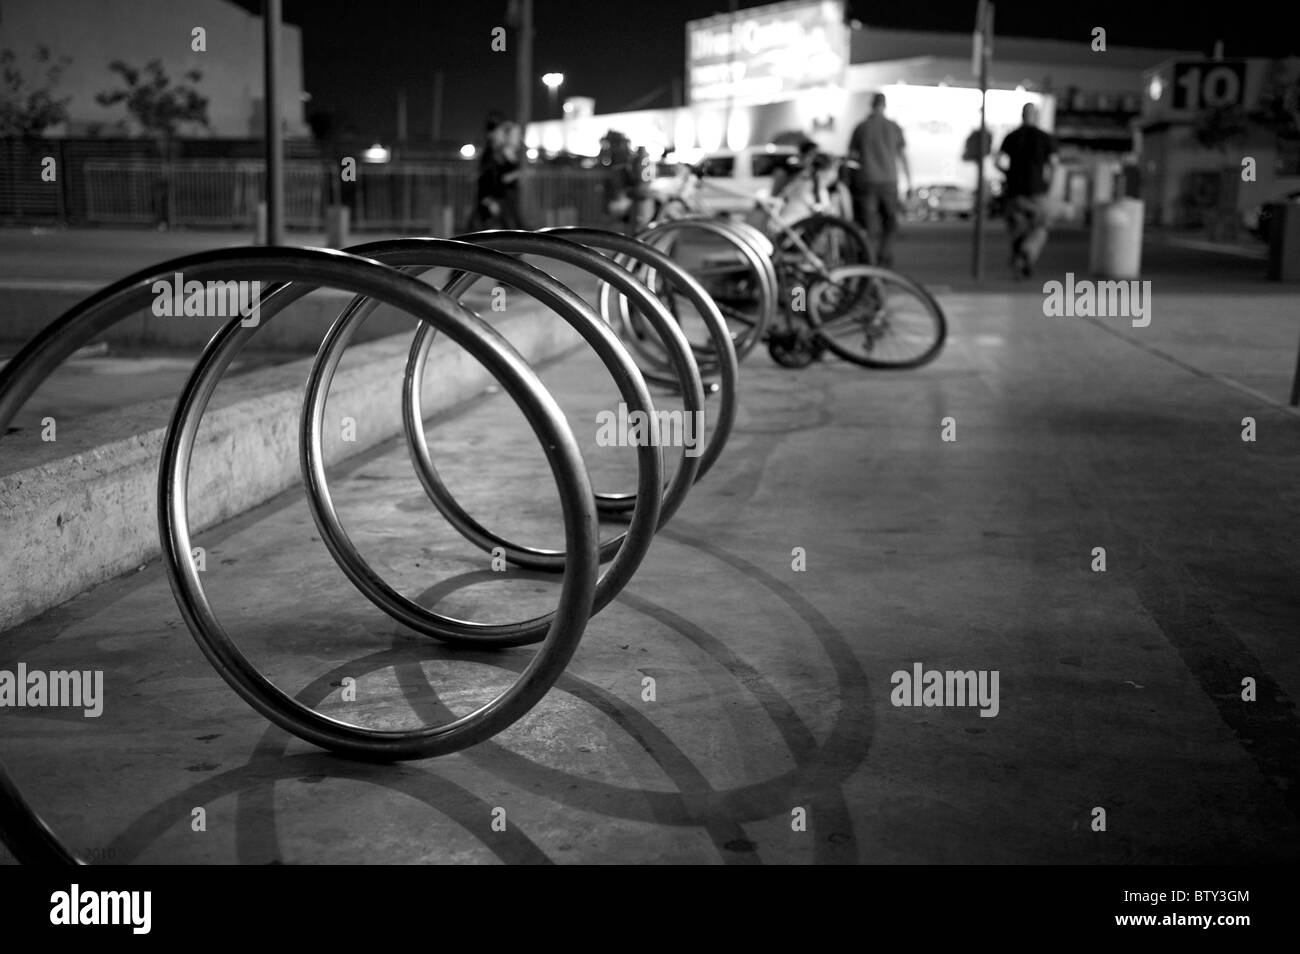 A bicycle stand at Tel-Aviv harbor - Stock Image